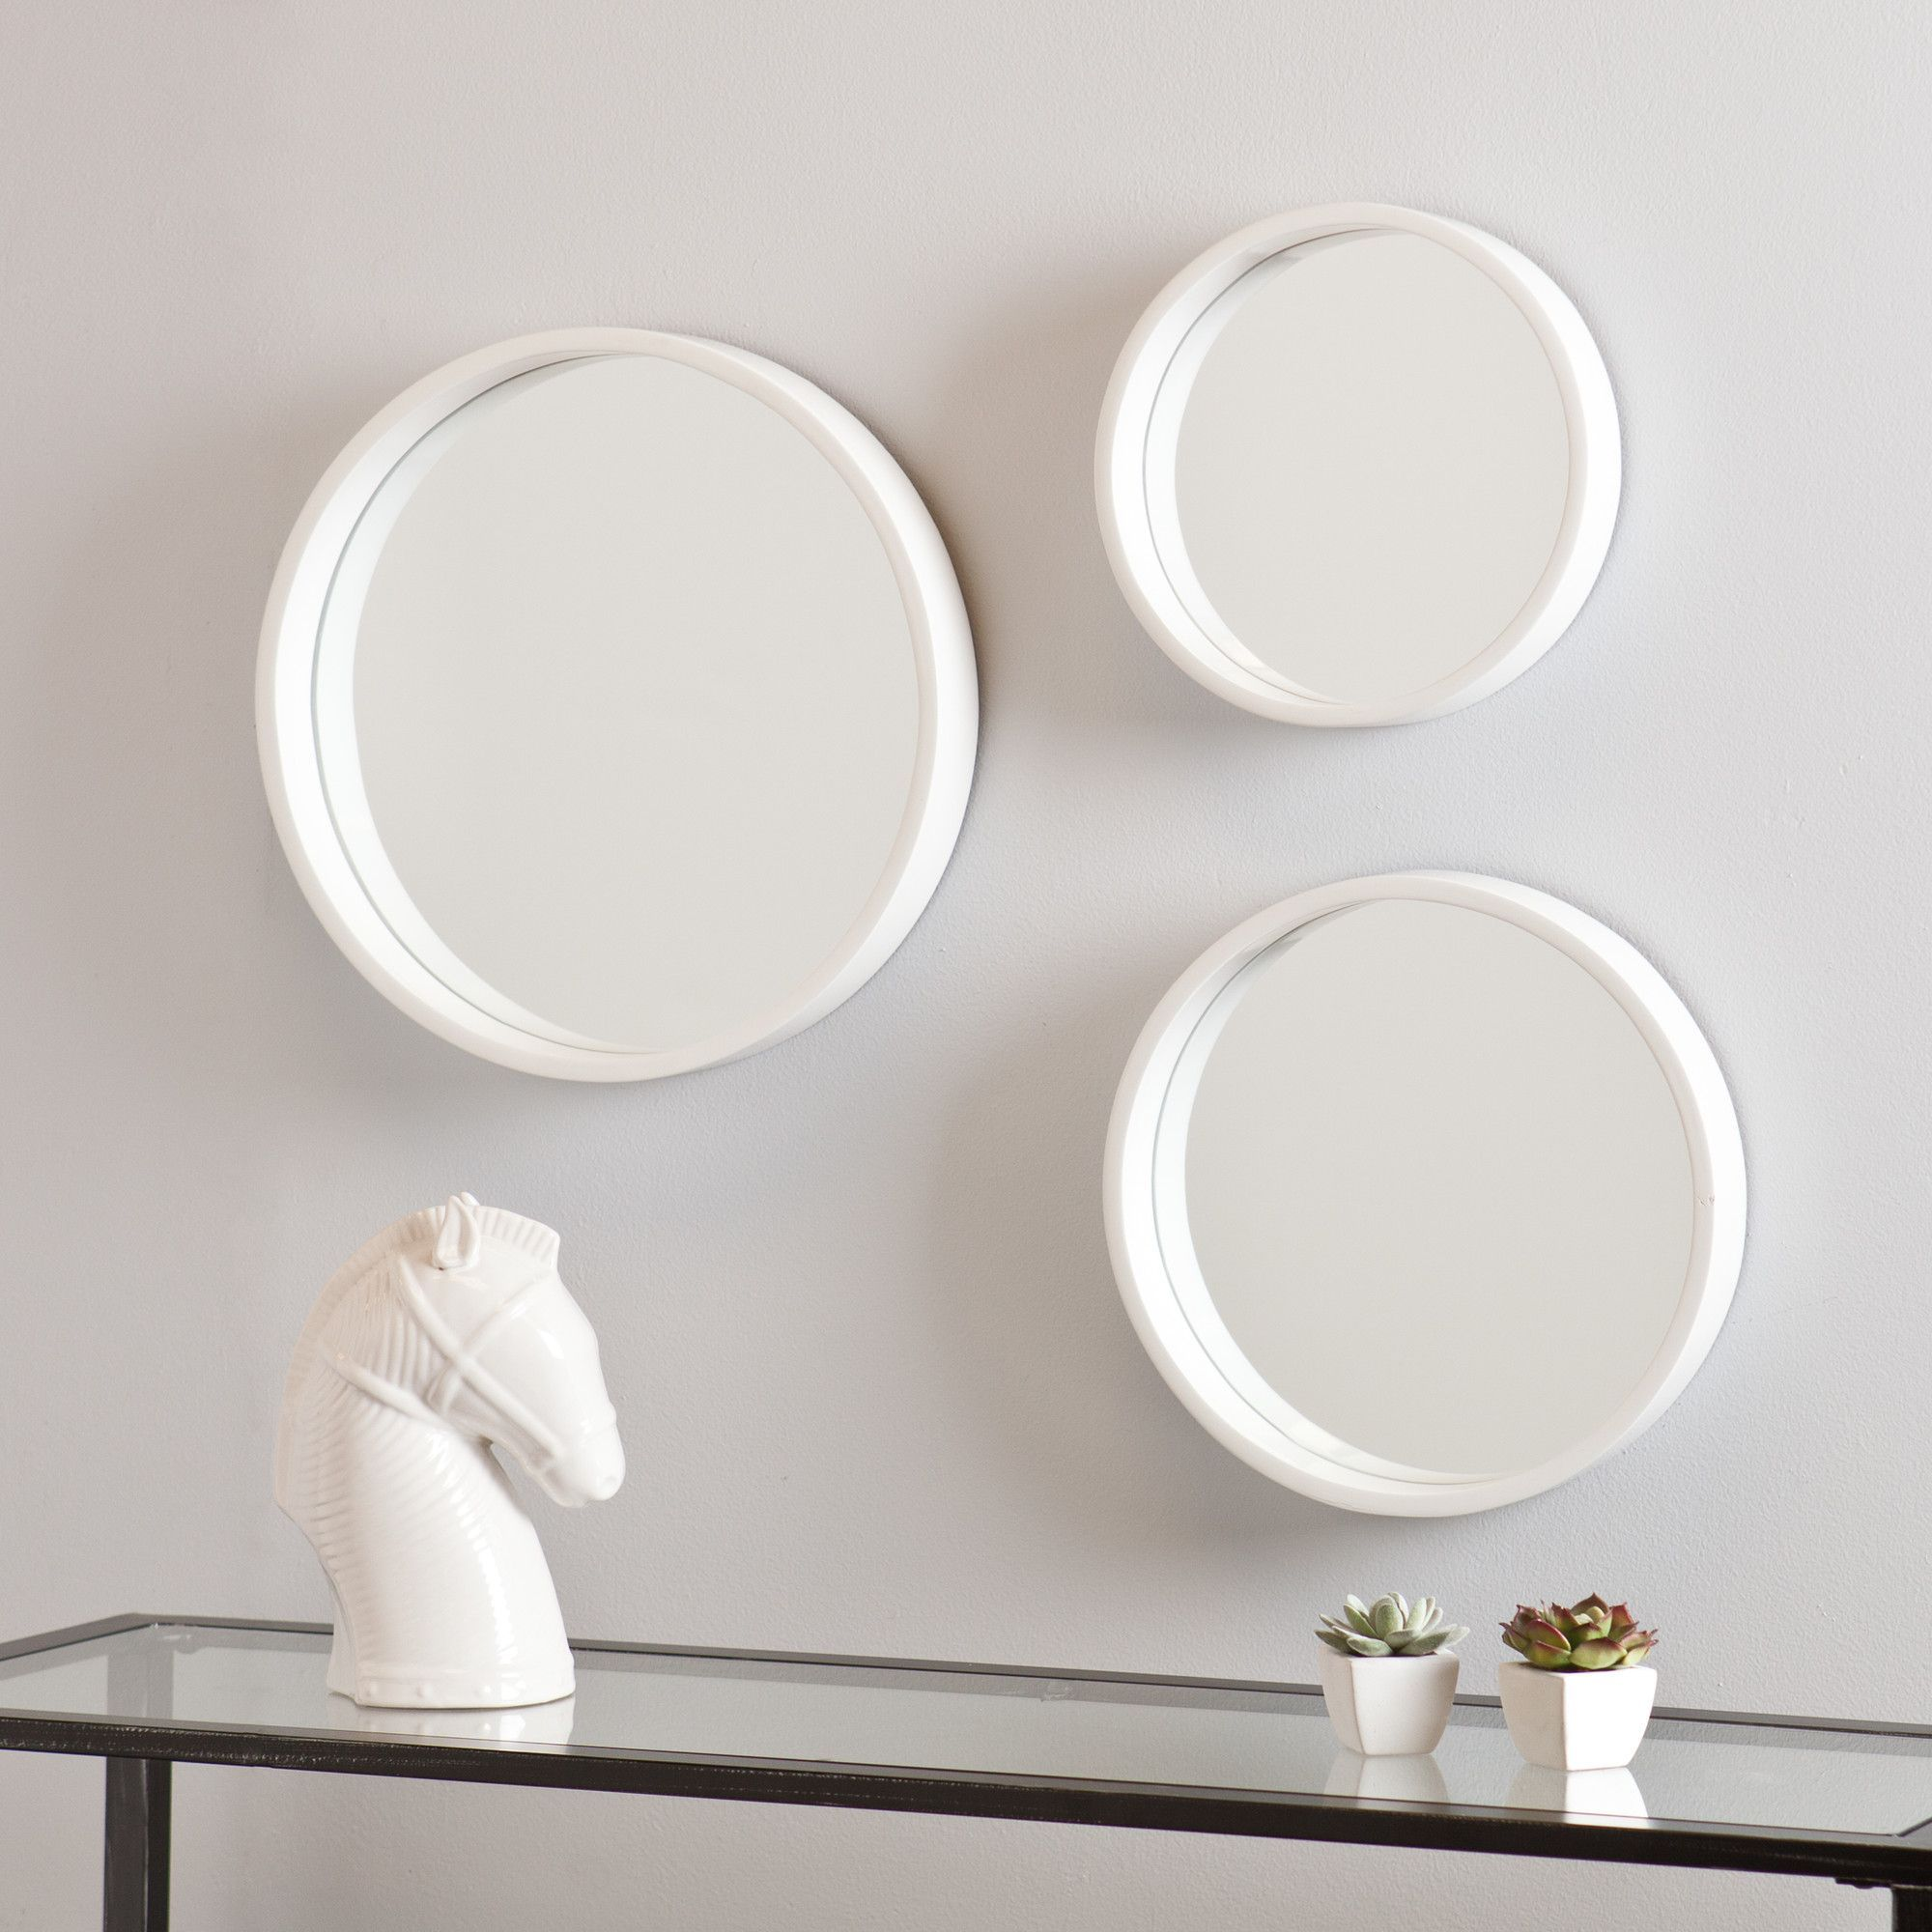 Daws 3 Piece Wall Mirror Set Products Mirror Round Wall Mirror